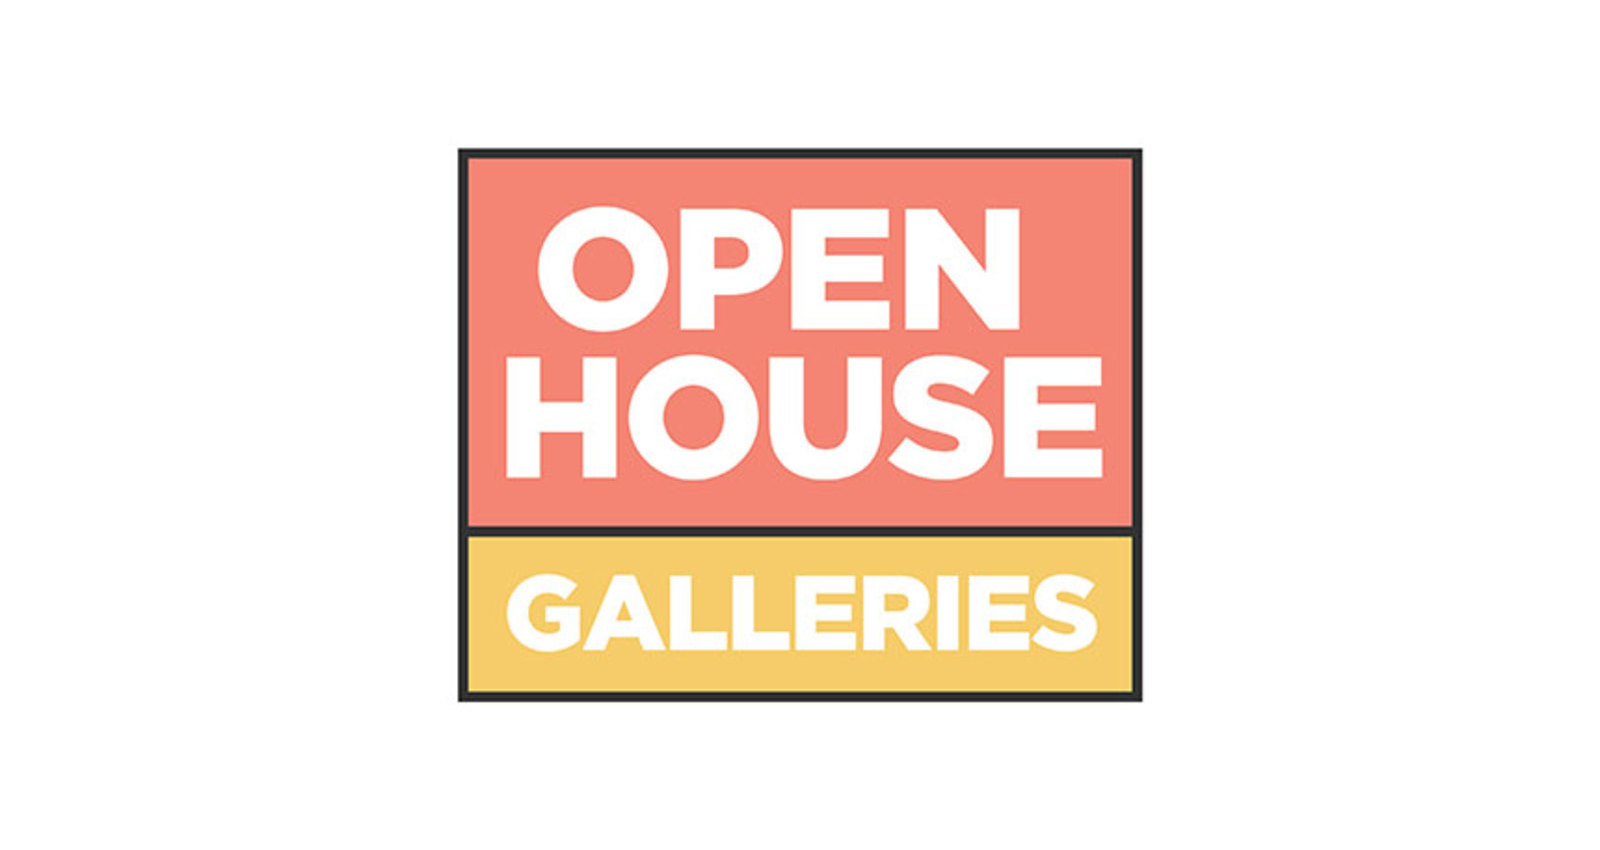 Open House Galleries